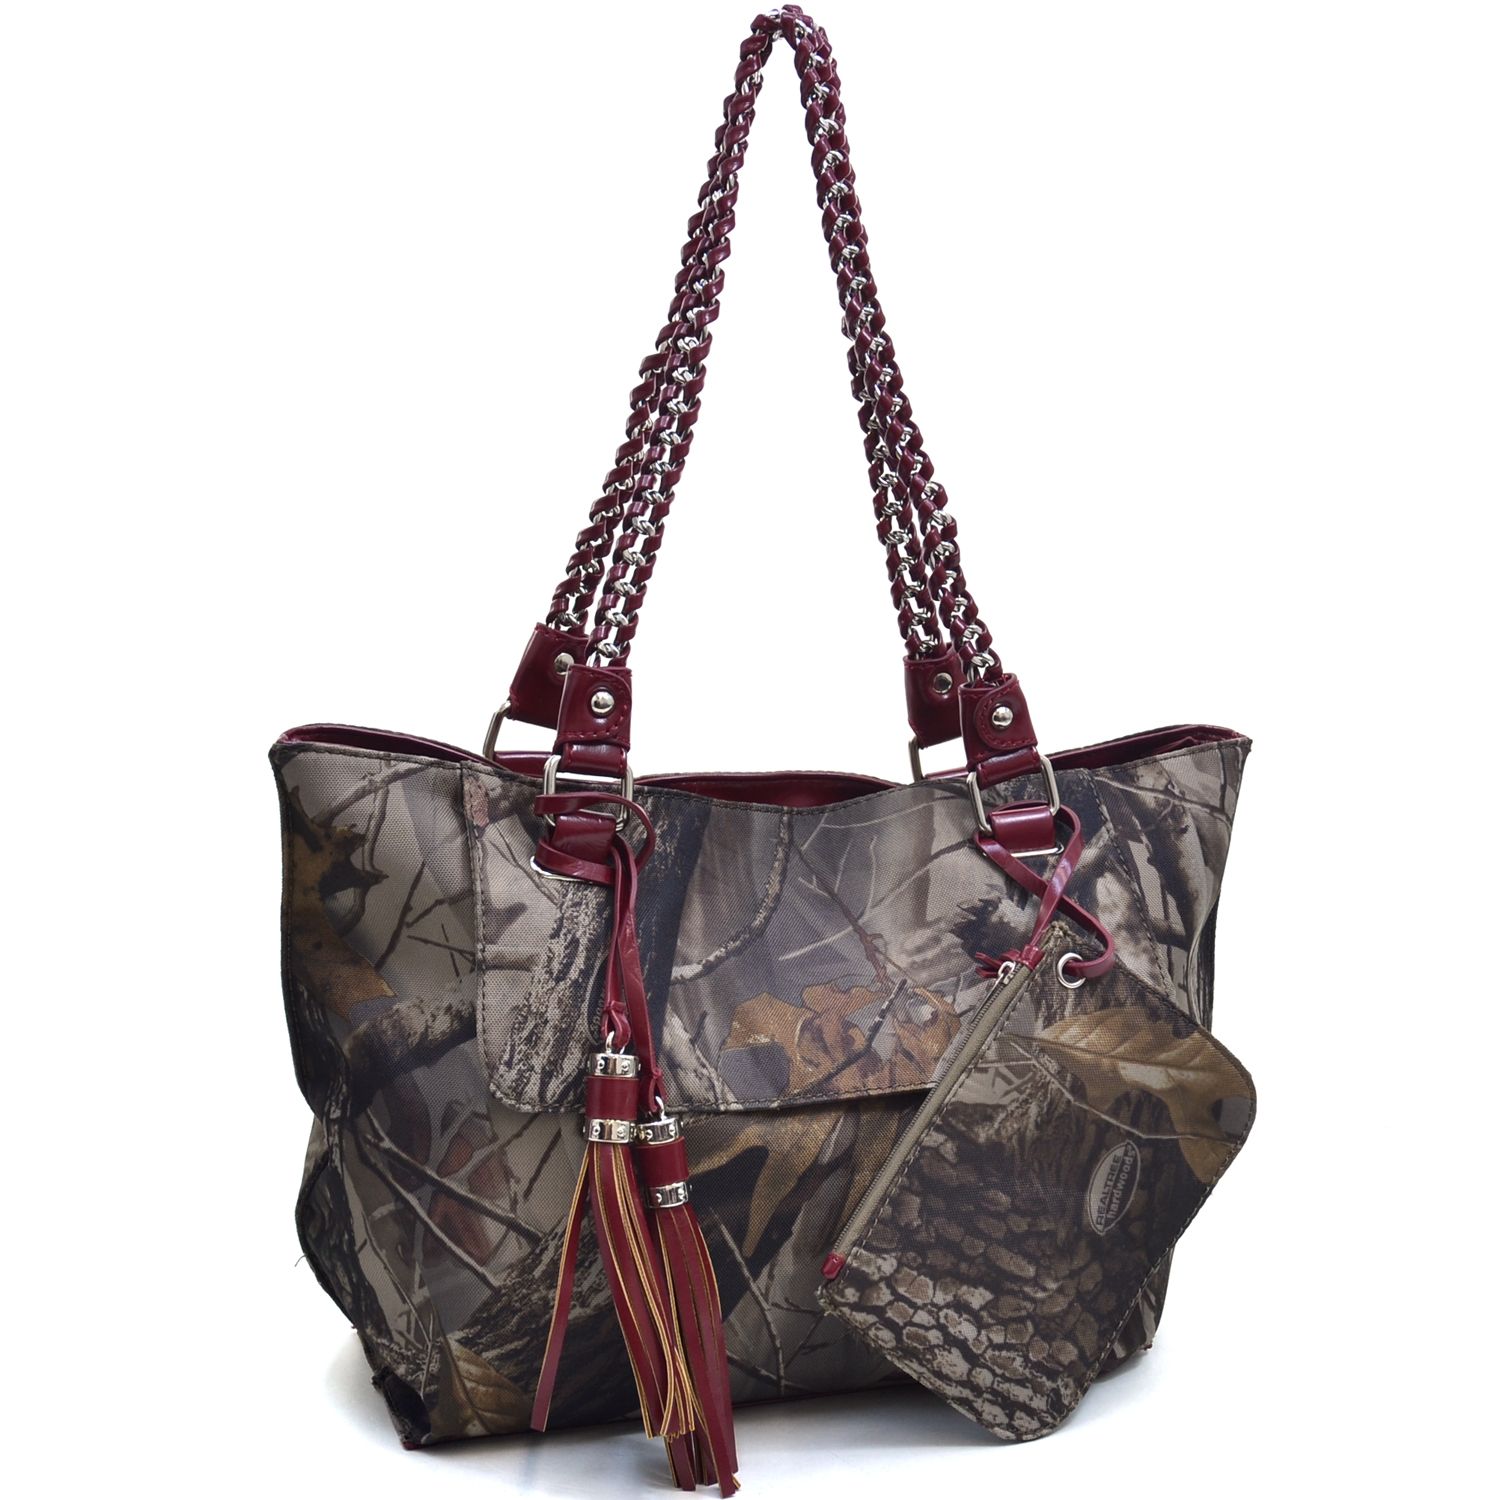 Realtree® Hardwoods HD Camo Large Chain Handle Tote With Coin Purse